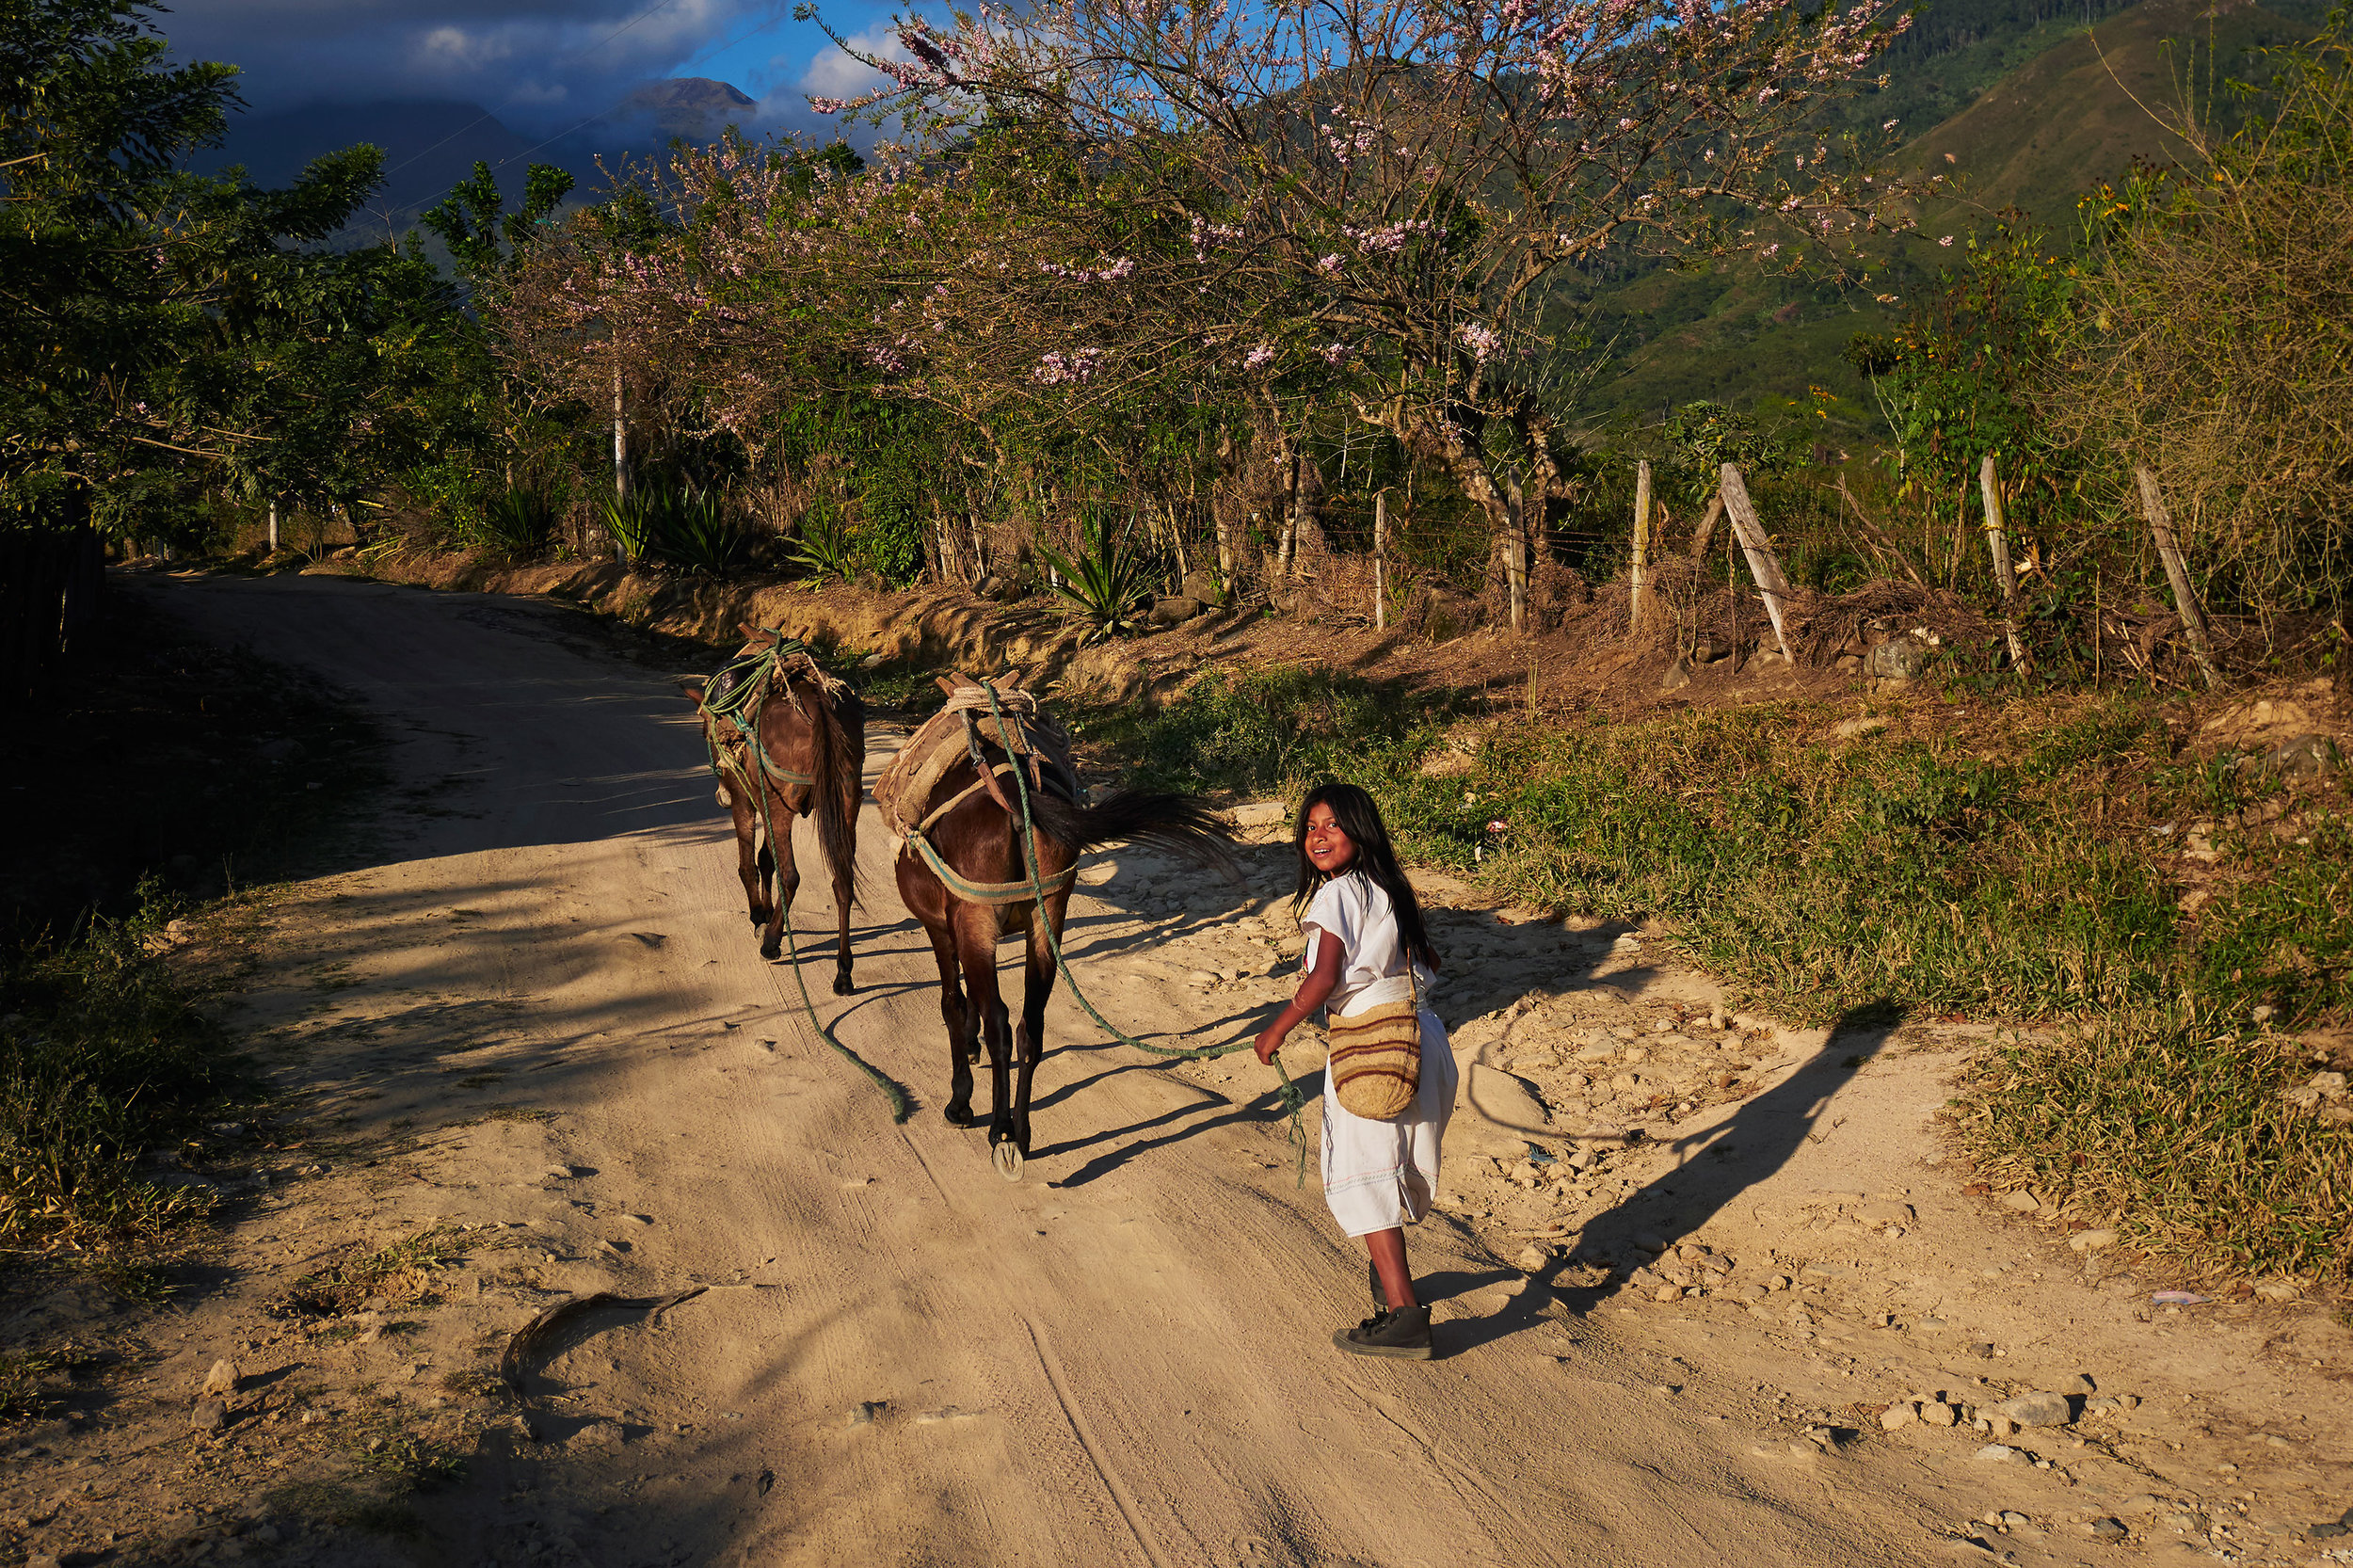 Colombia-travel-Pueblo-Bello-Arhuaco-girl-with-mules